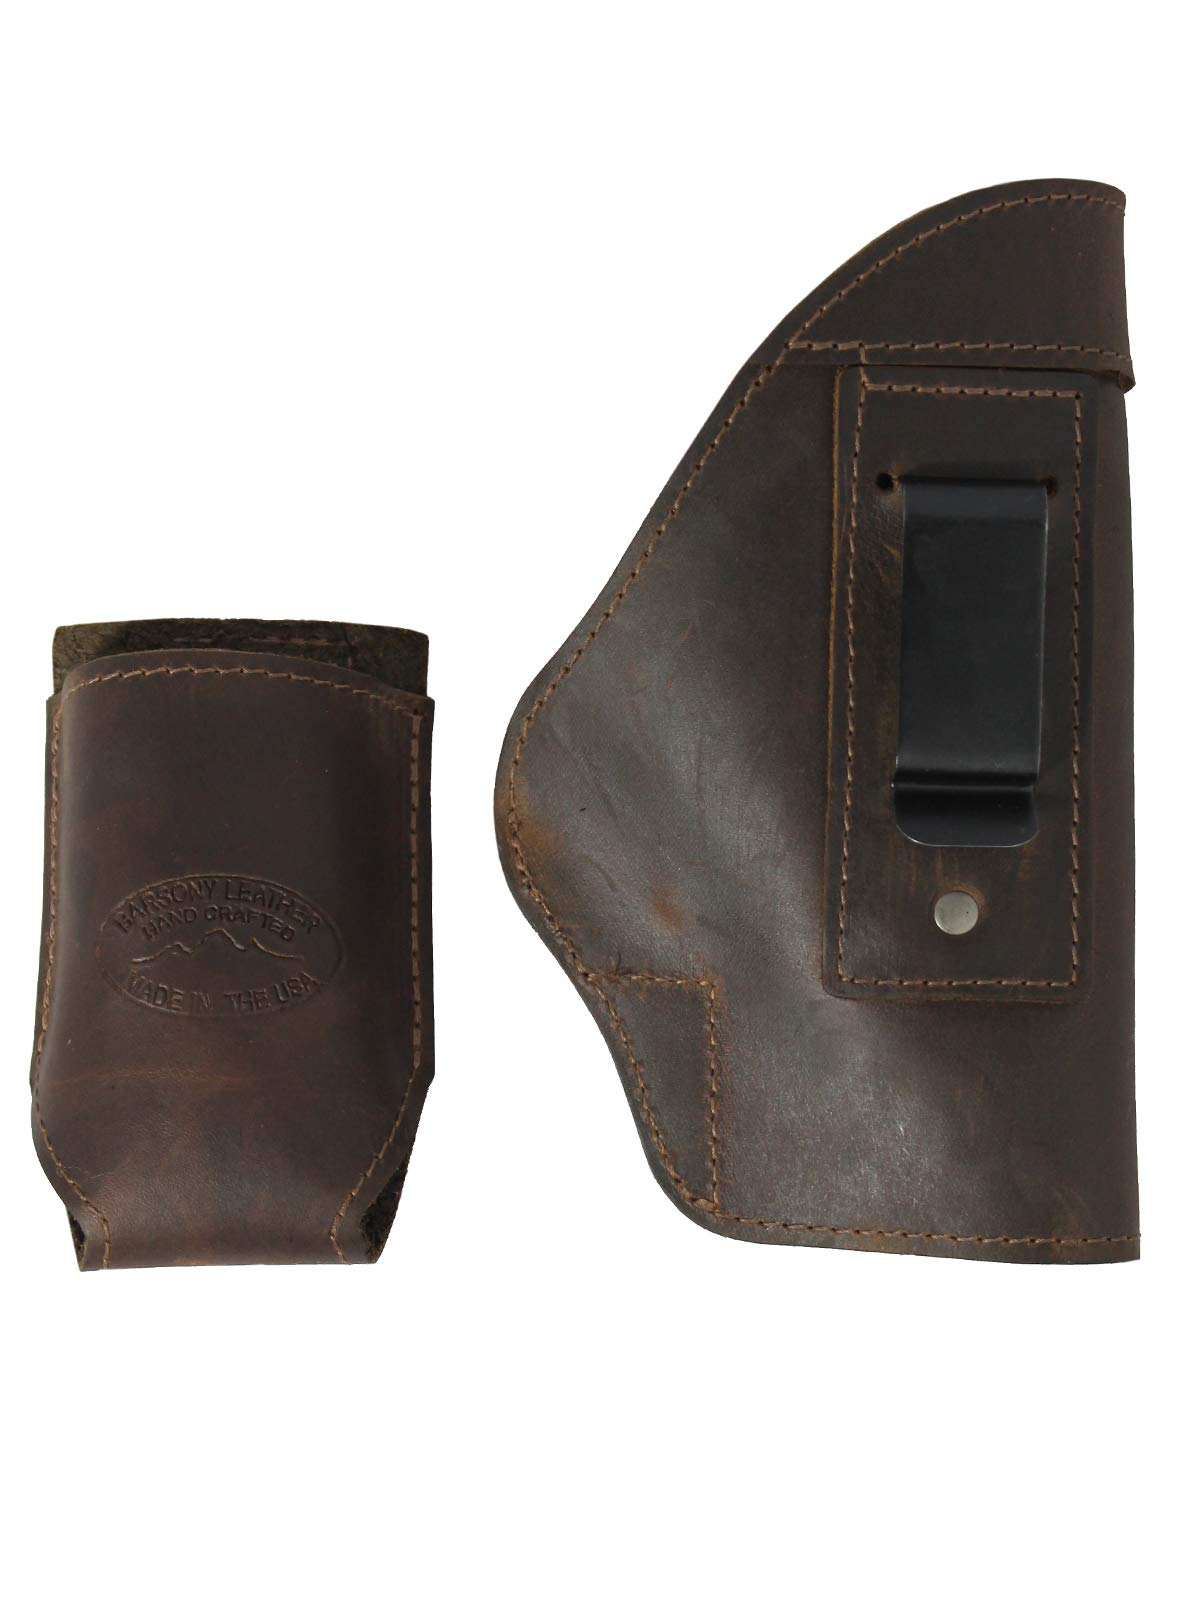 Barsony Brown Leather Holster Magazine